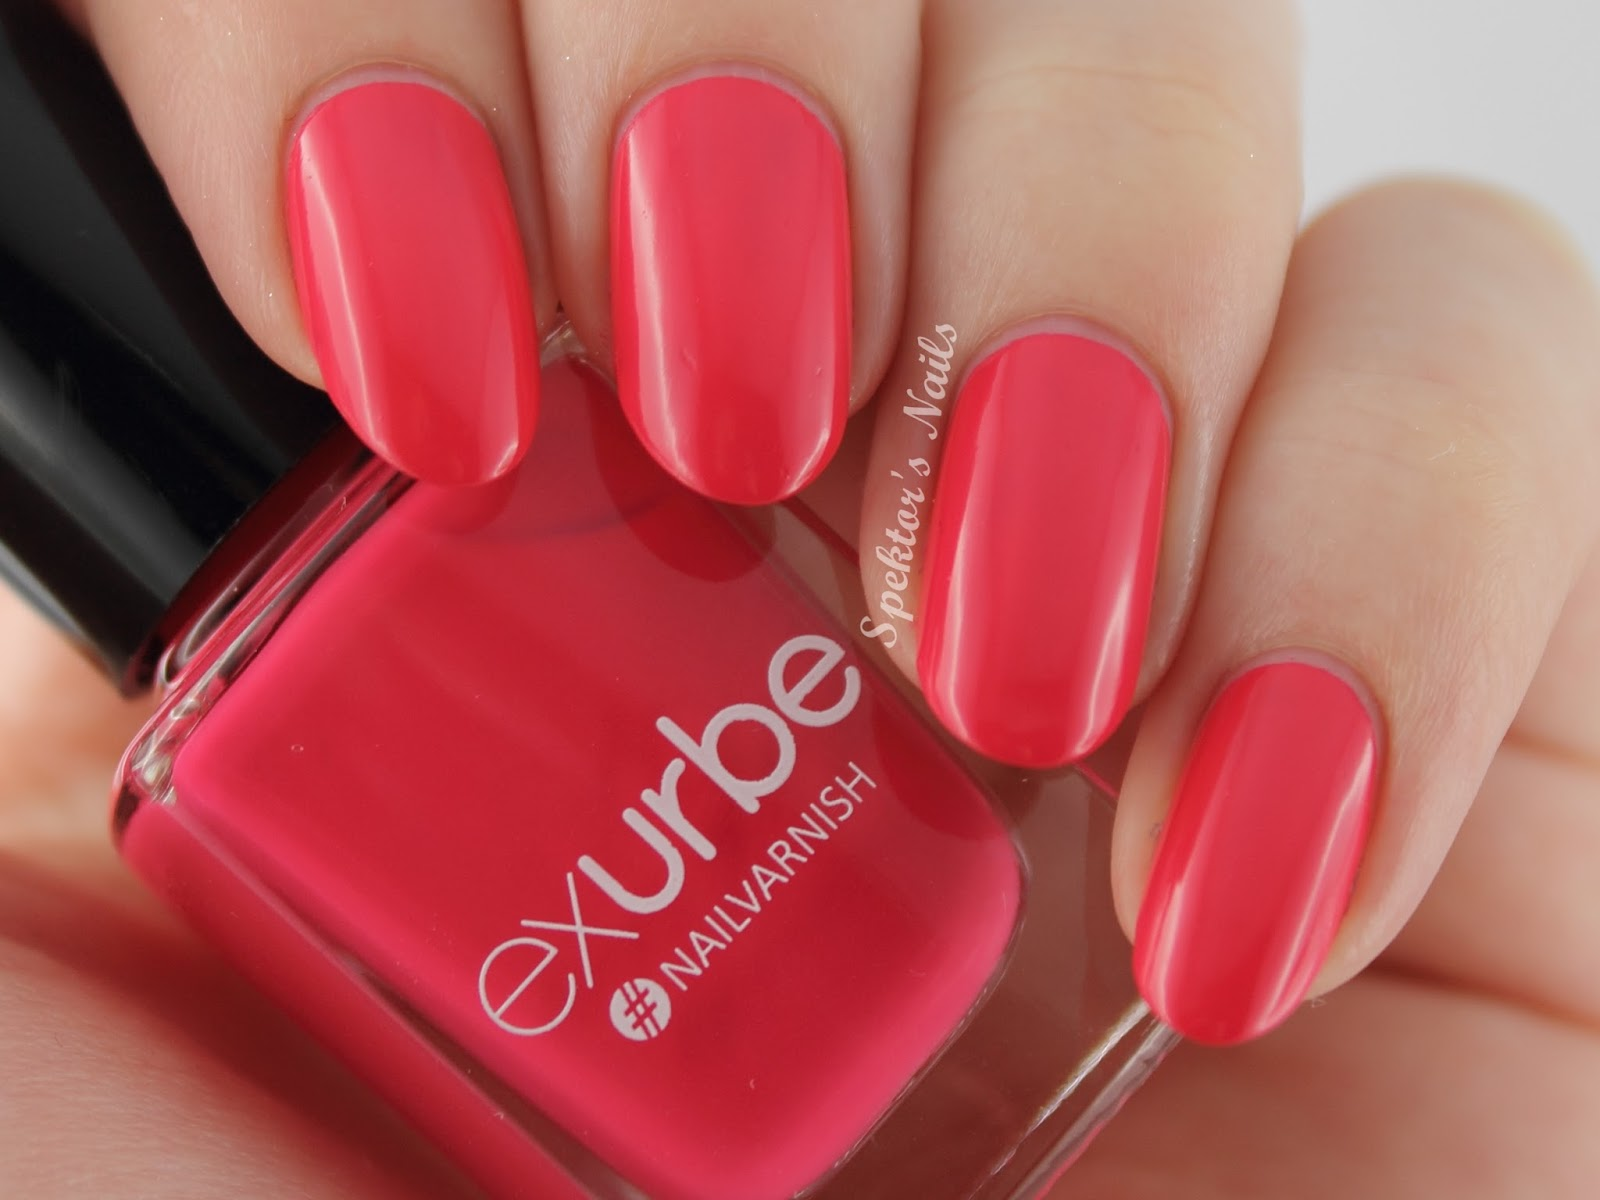 Exurbe Cosmetics - Uptown Girl